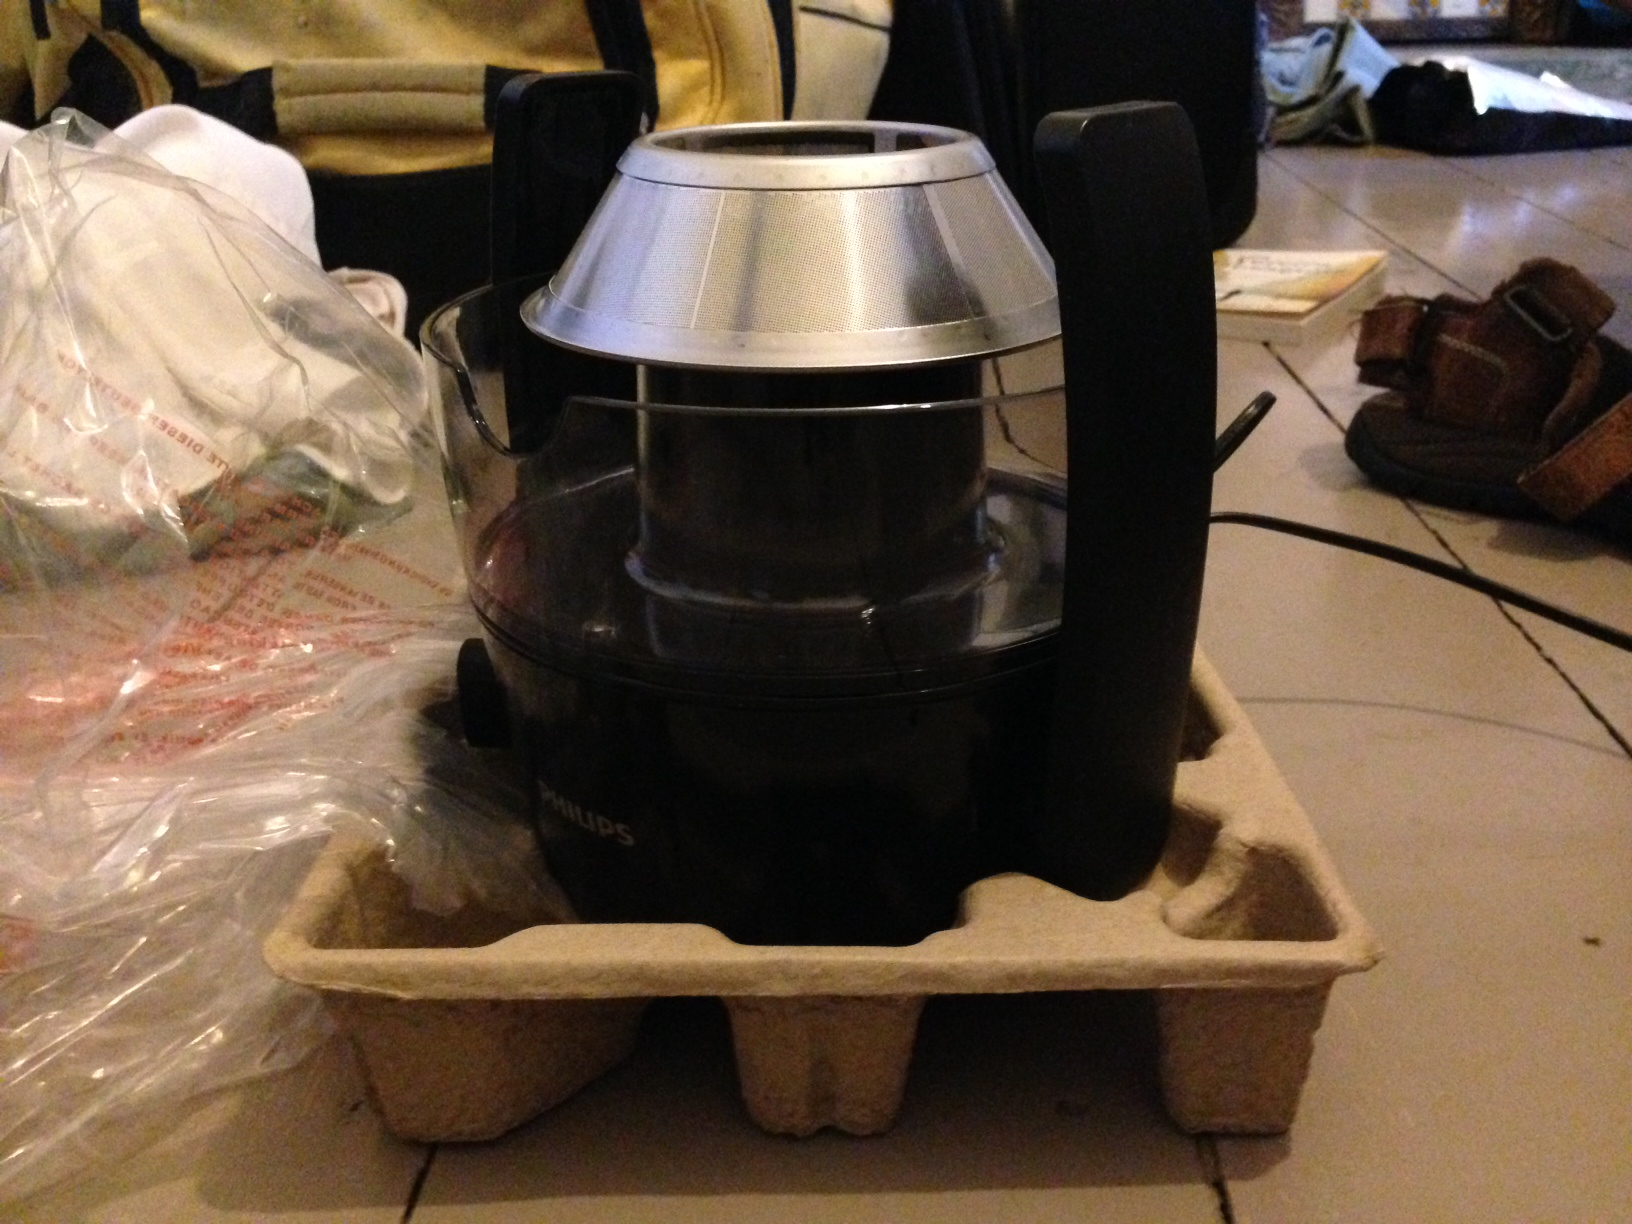 The not-so-compact Juicer!